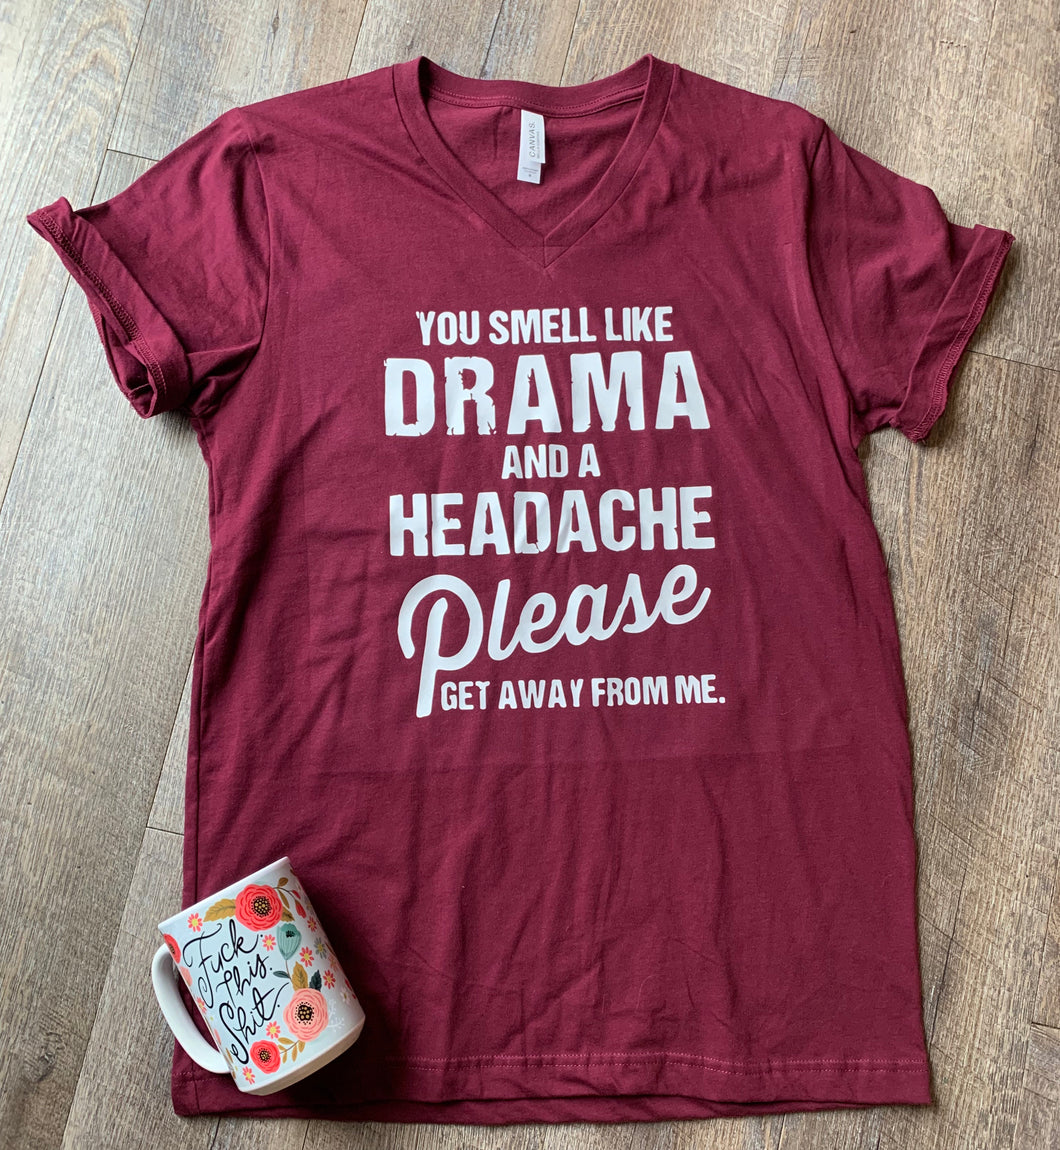 You smell like drama and a headache please get away from me. Funny graphic tee. - Mavictoria Designs Hot Press Express